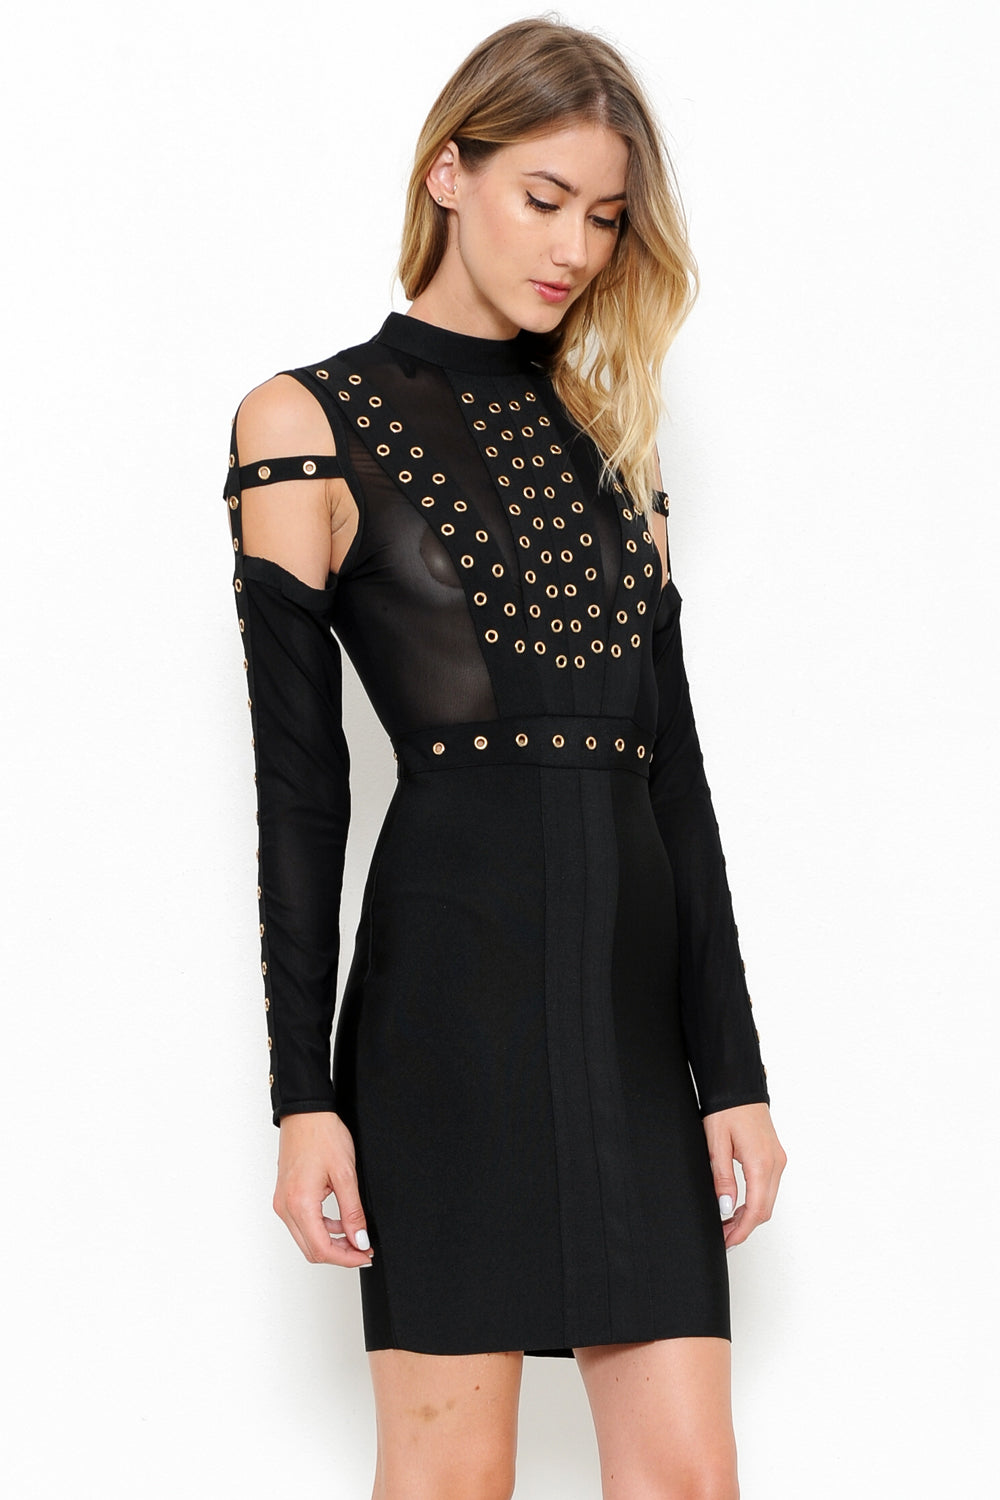 Night Visions Dress - Geegeebae